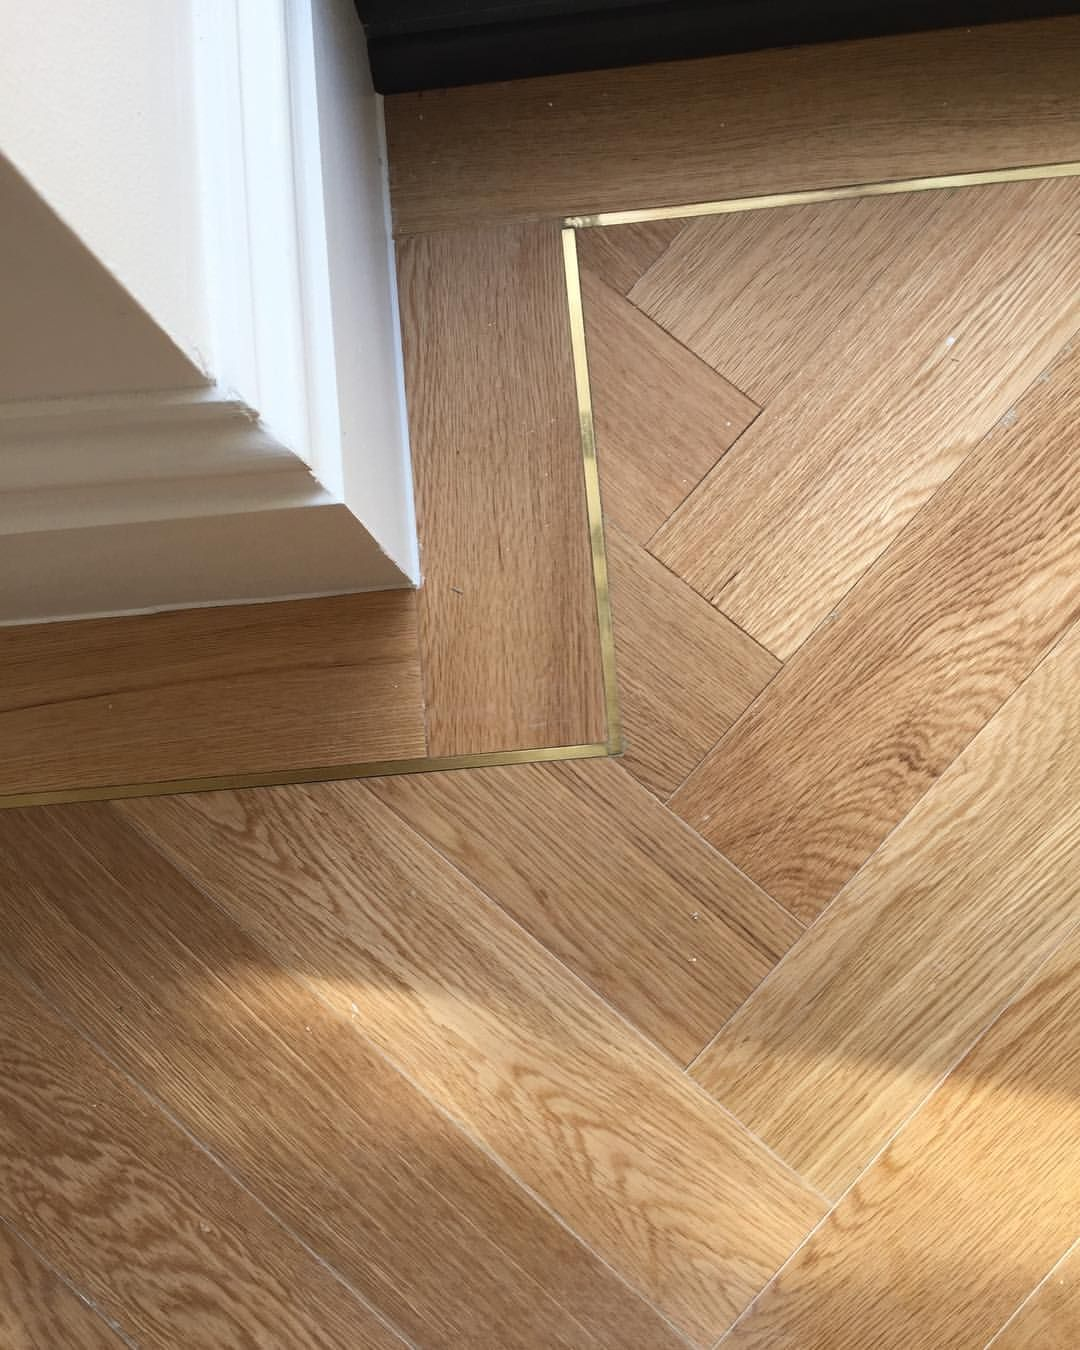 The Floor Is Looking So Smart 37 Wood Floor Texture Ideas How To Flooring On A Budget Step By Step Stunning Use Of Materials Finishe Wood Floor Texture Floor